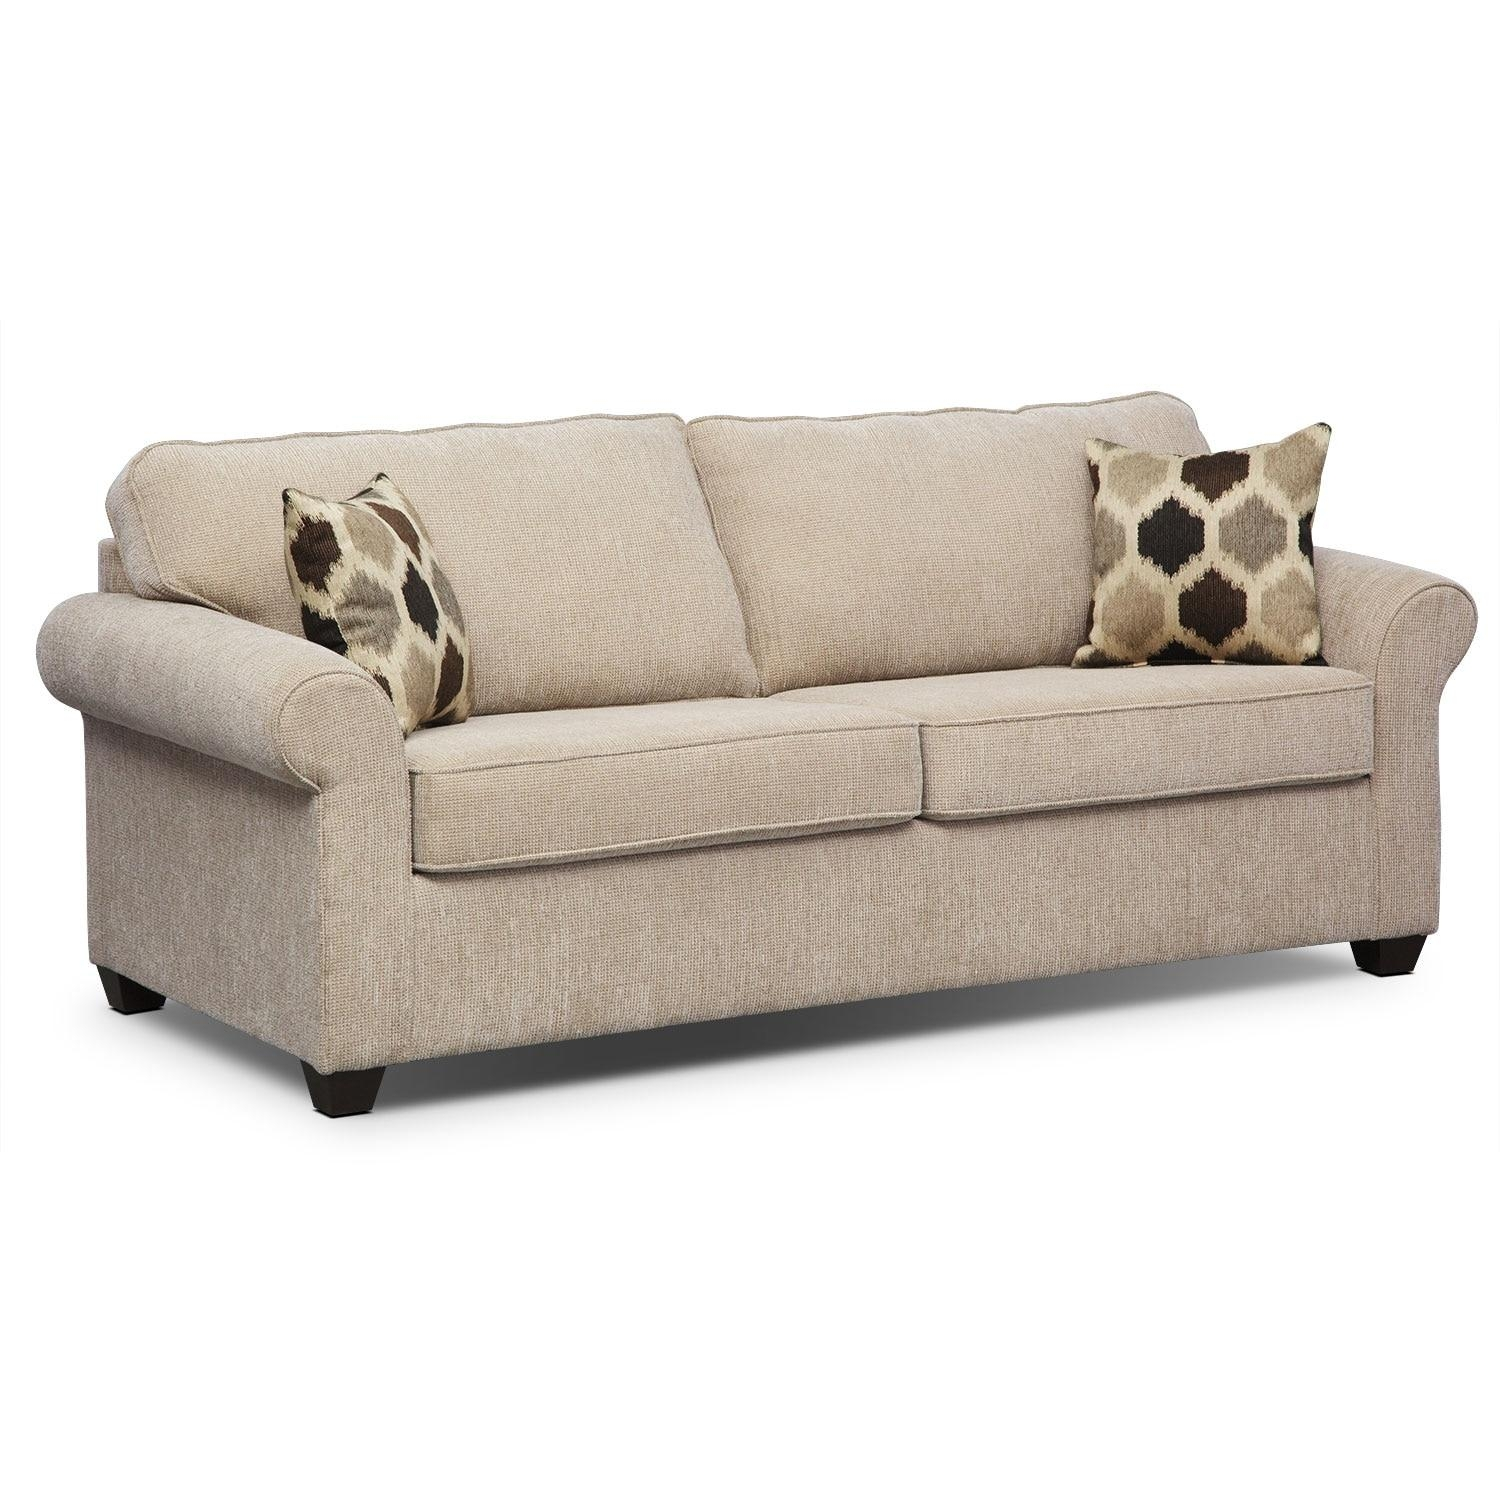 The Fletcher Collection – Beige | Value City Furniture With Regard To City Sofa Beds (Image 20 of 20)